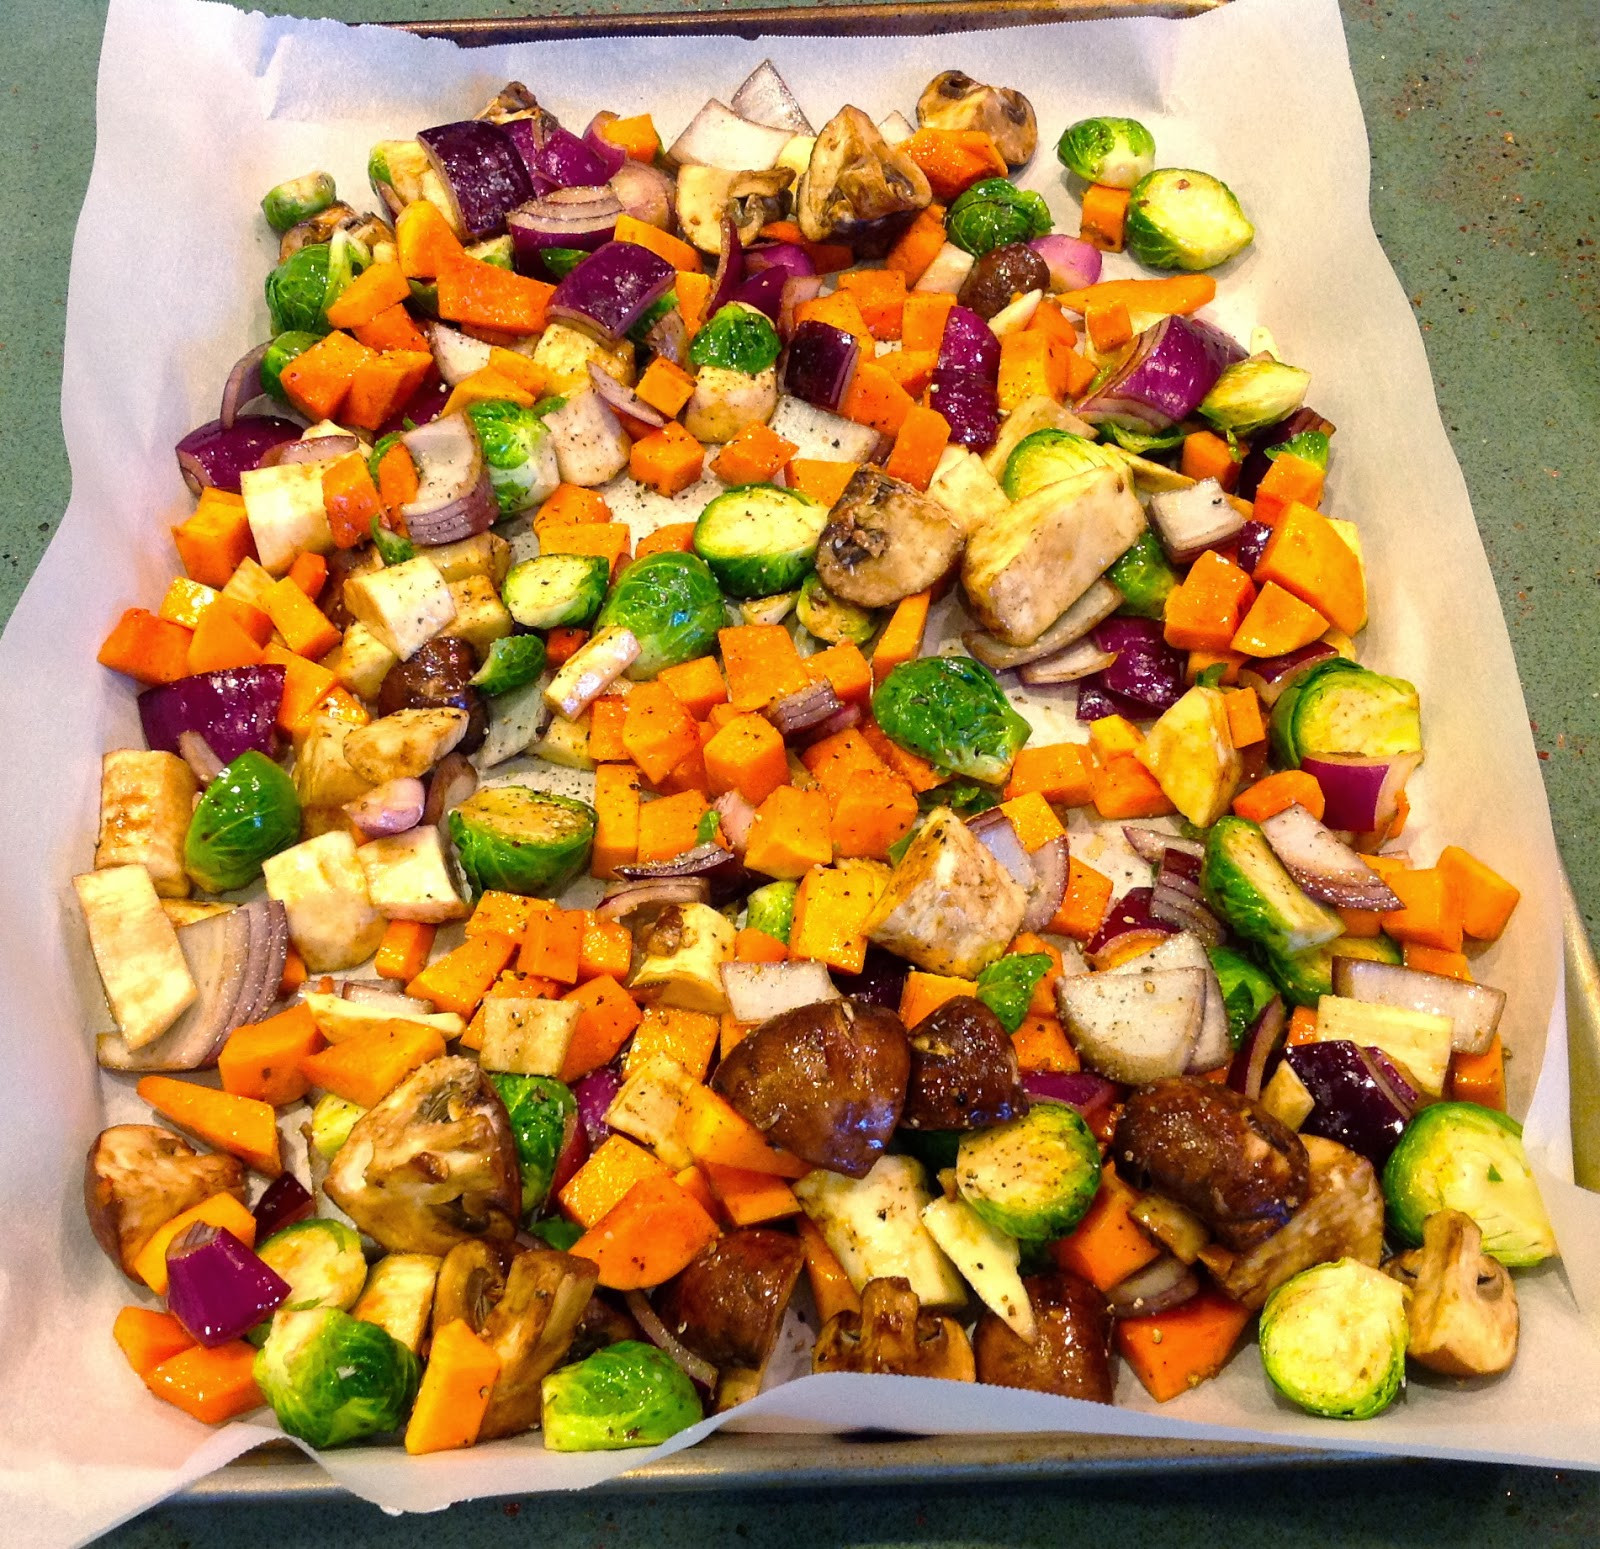 Roasted Vegetables For Thanksgiving  Planning for Thanksgiving Farro and Wild Rice with